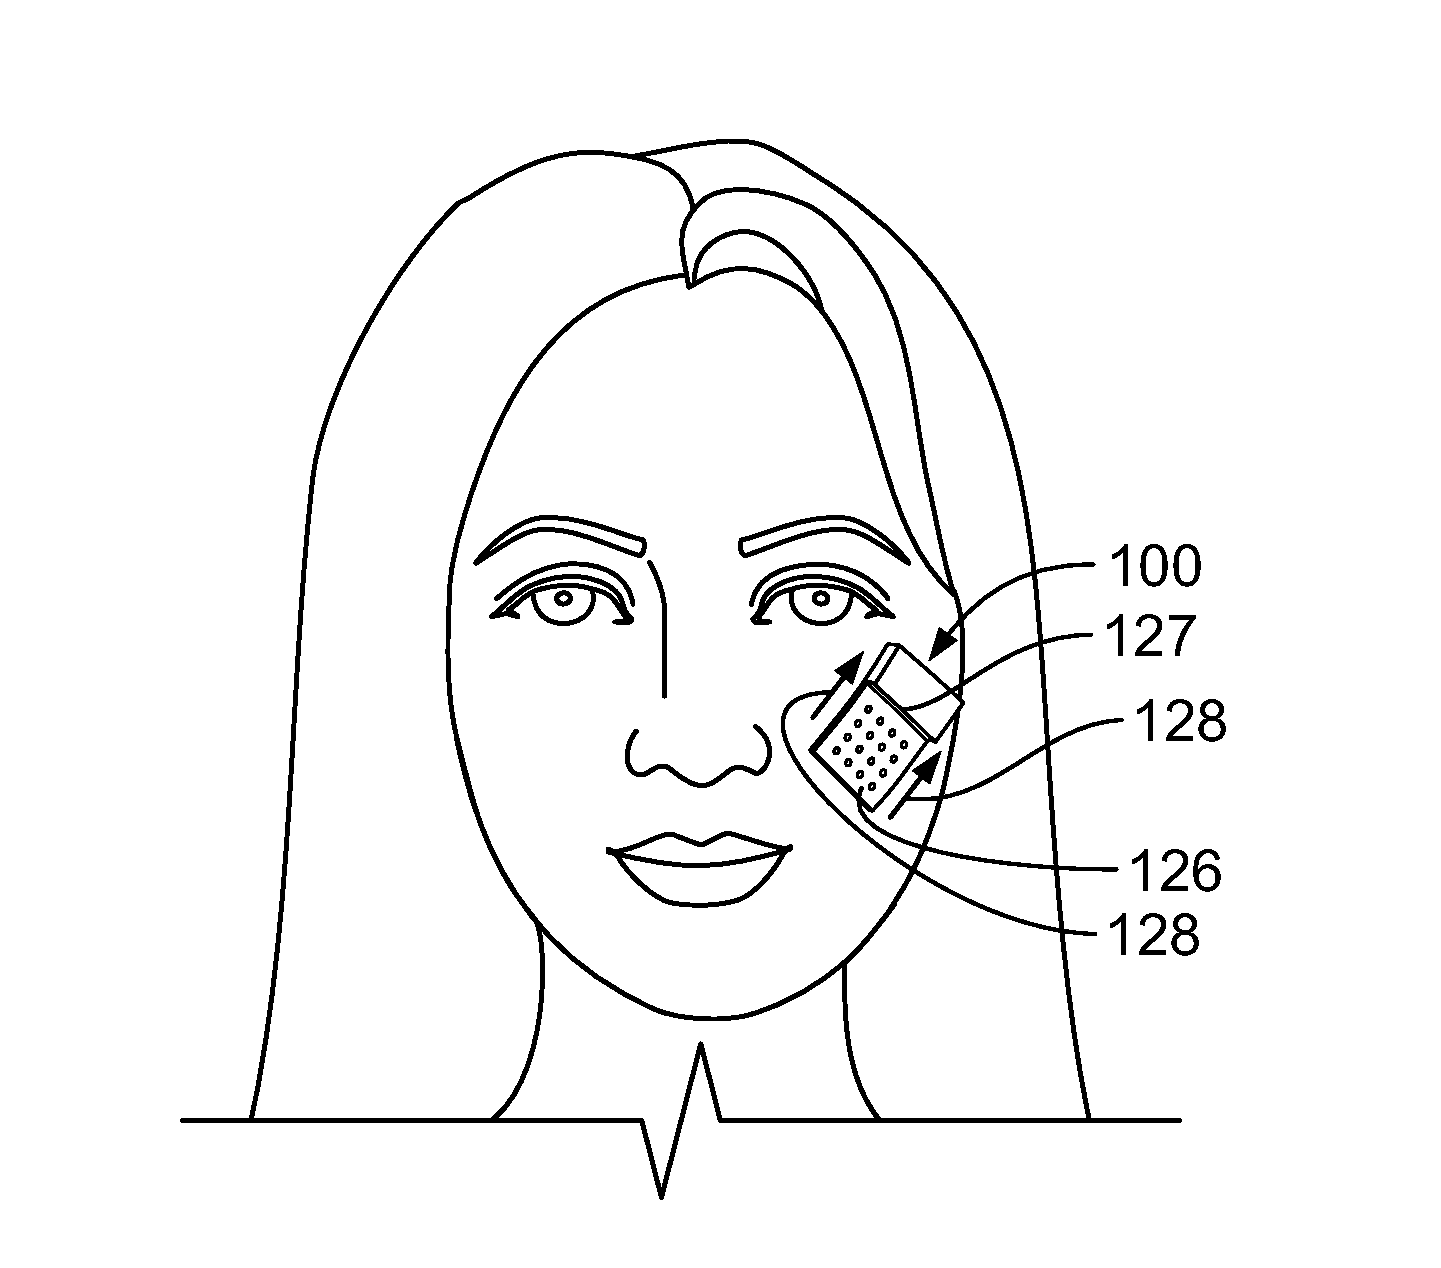 patent us20130190673 devices and methods for skin tightening Facial Sculpting Men patent drawing